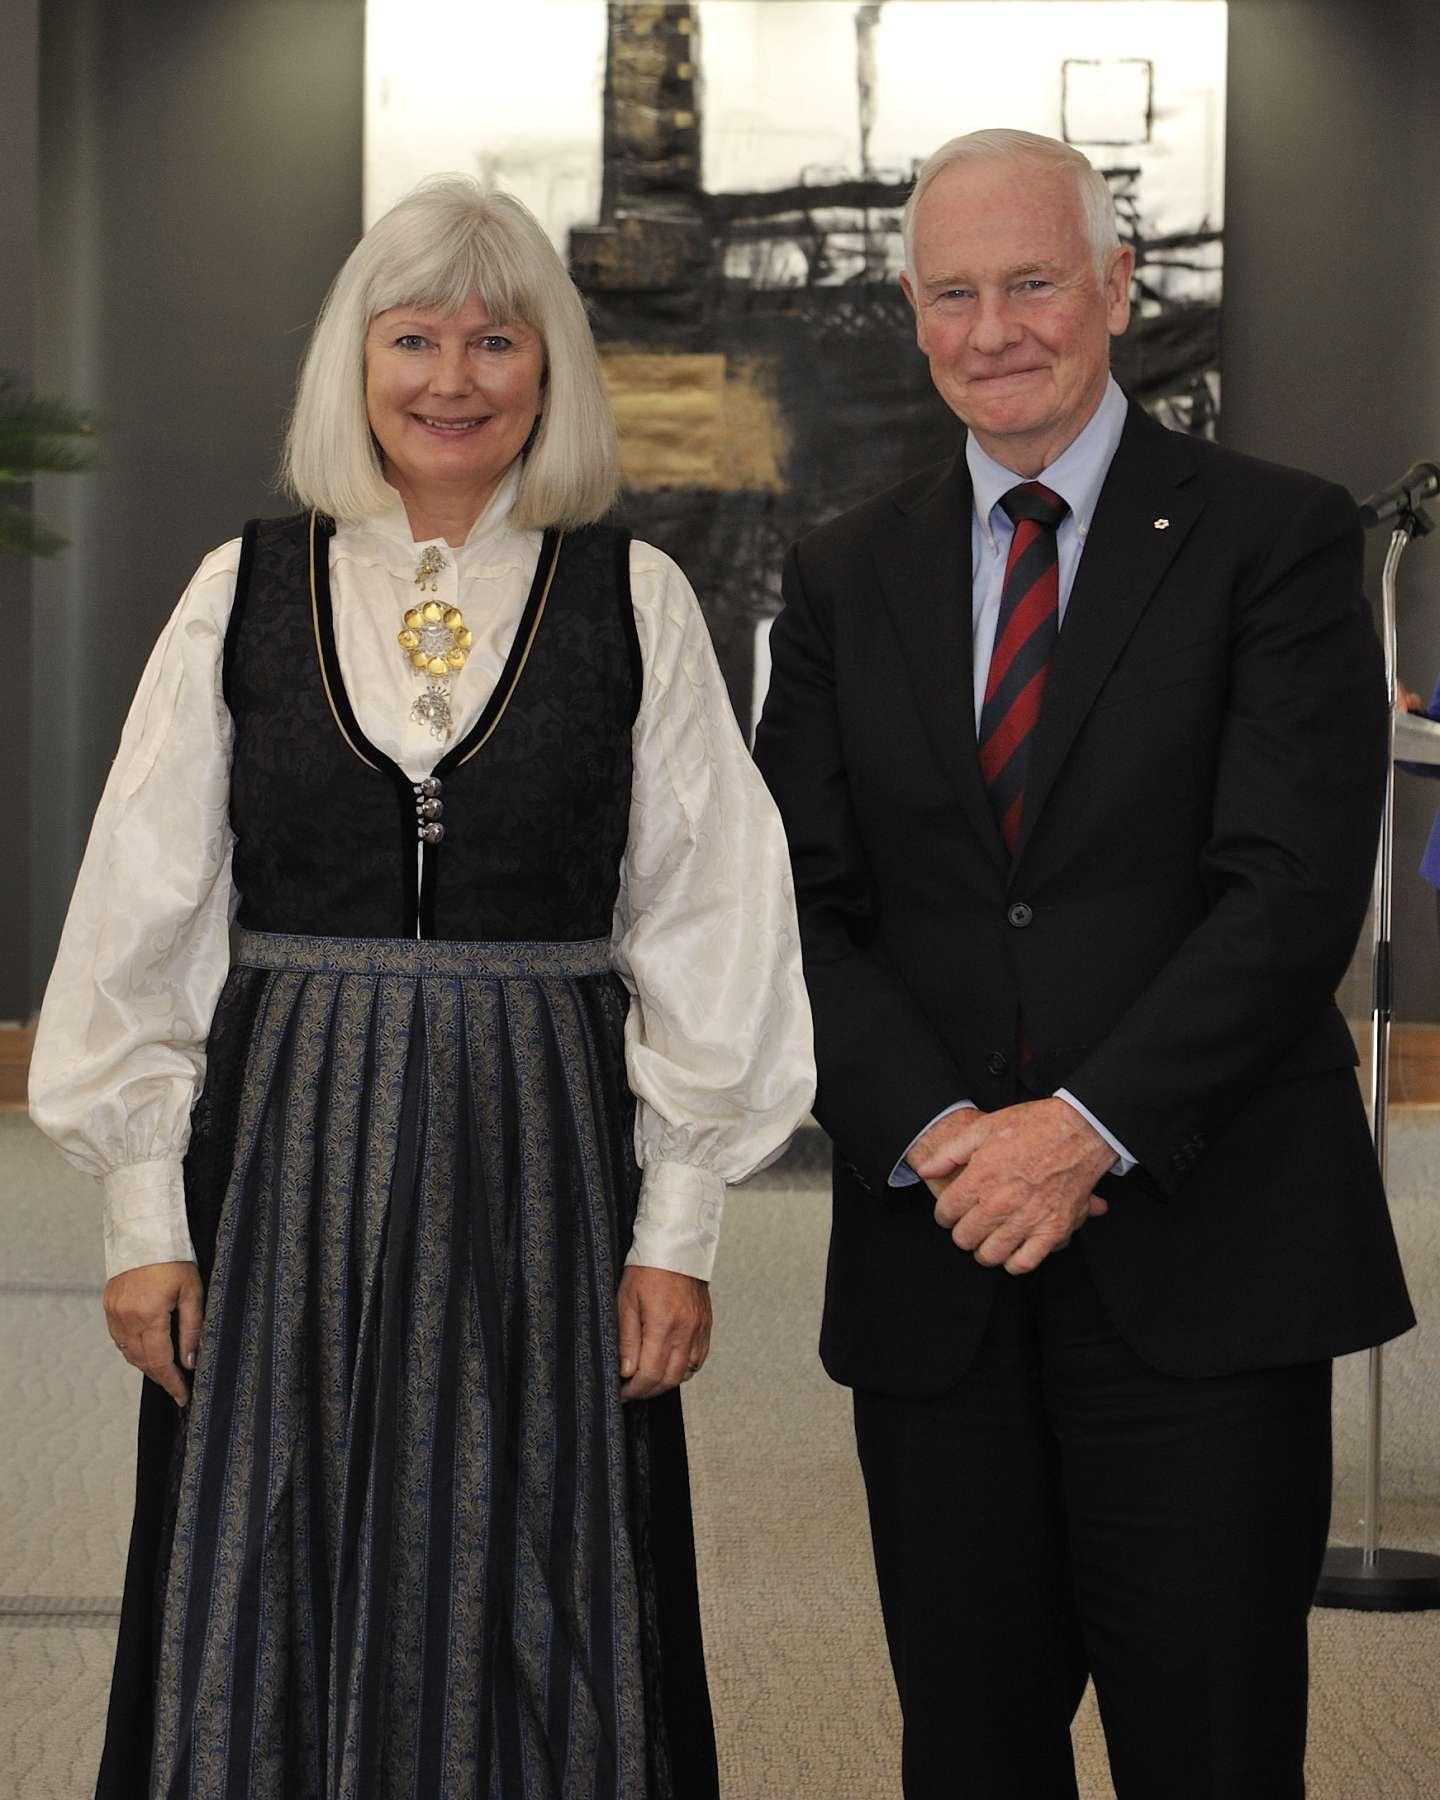 The Governor General received the credentials of Her Excellency Mona Elisabeth Brøther, Ambassador of the Kingdom of Norway.